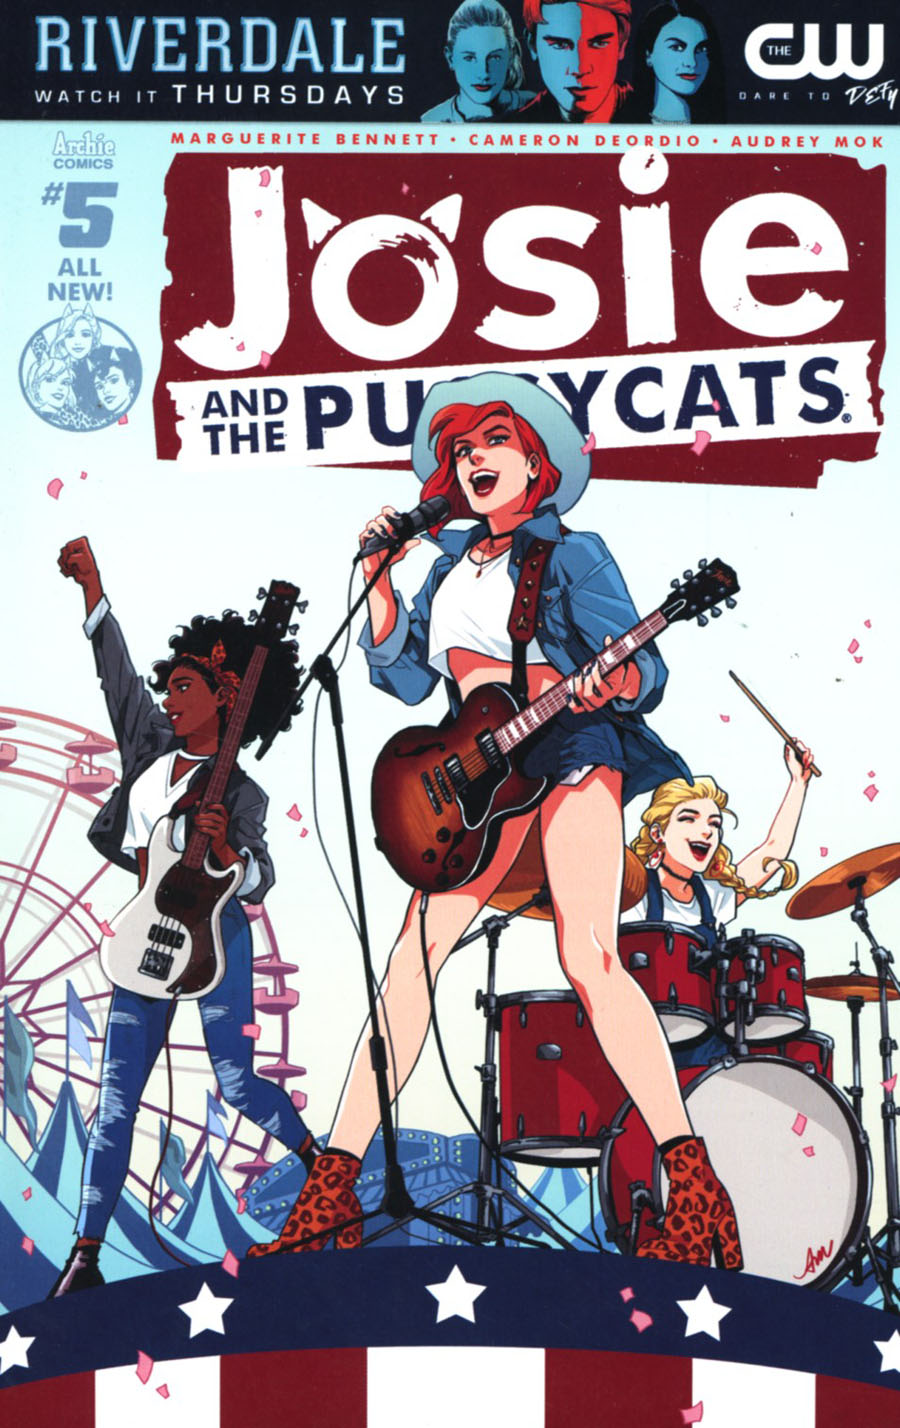 Josie And The Pussycats Vol 2 #5 Cover A Regular Audrey Mok Cover